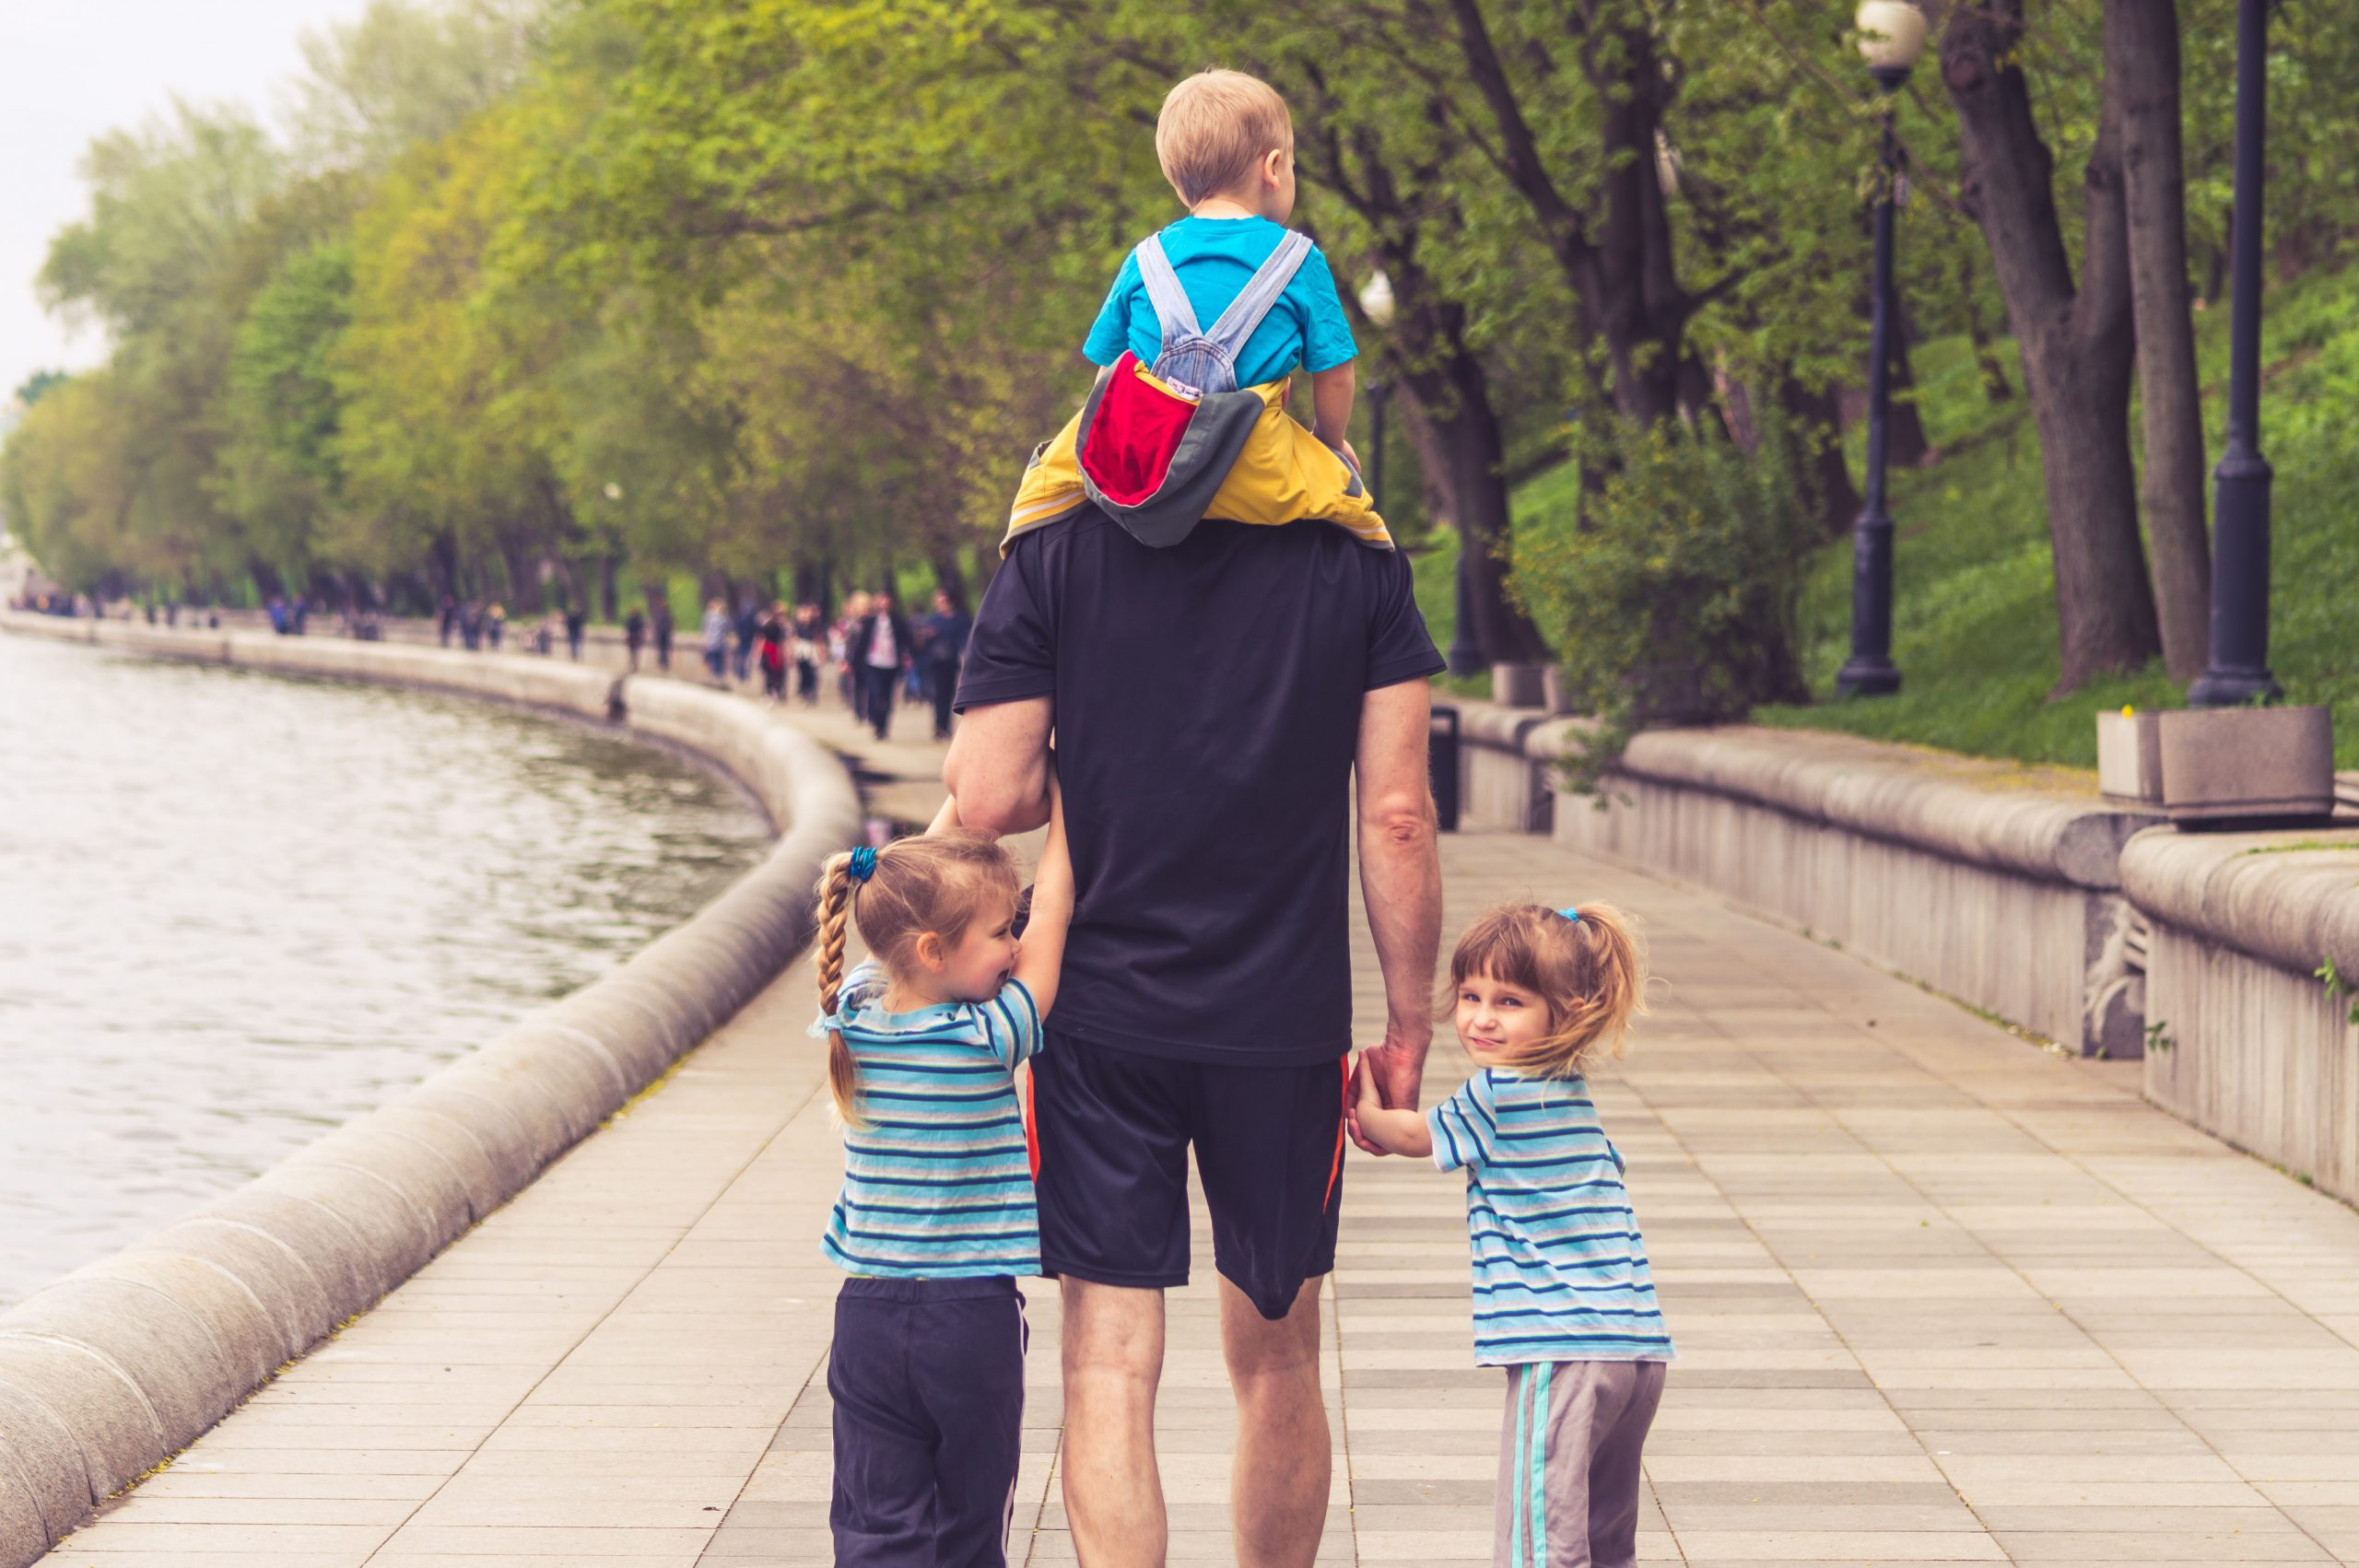 Man with a kid on his shoulders, holding hands with two kids, walking down a riverwalk